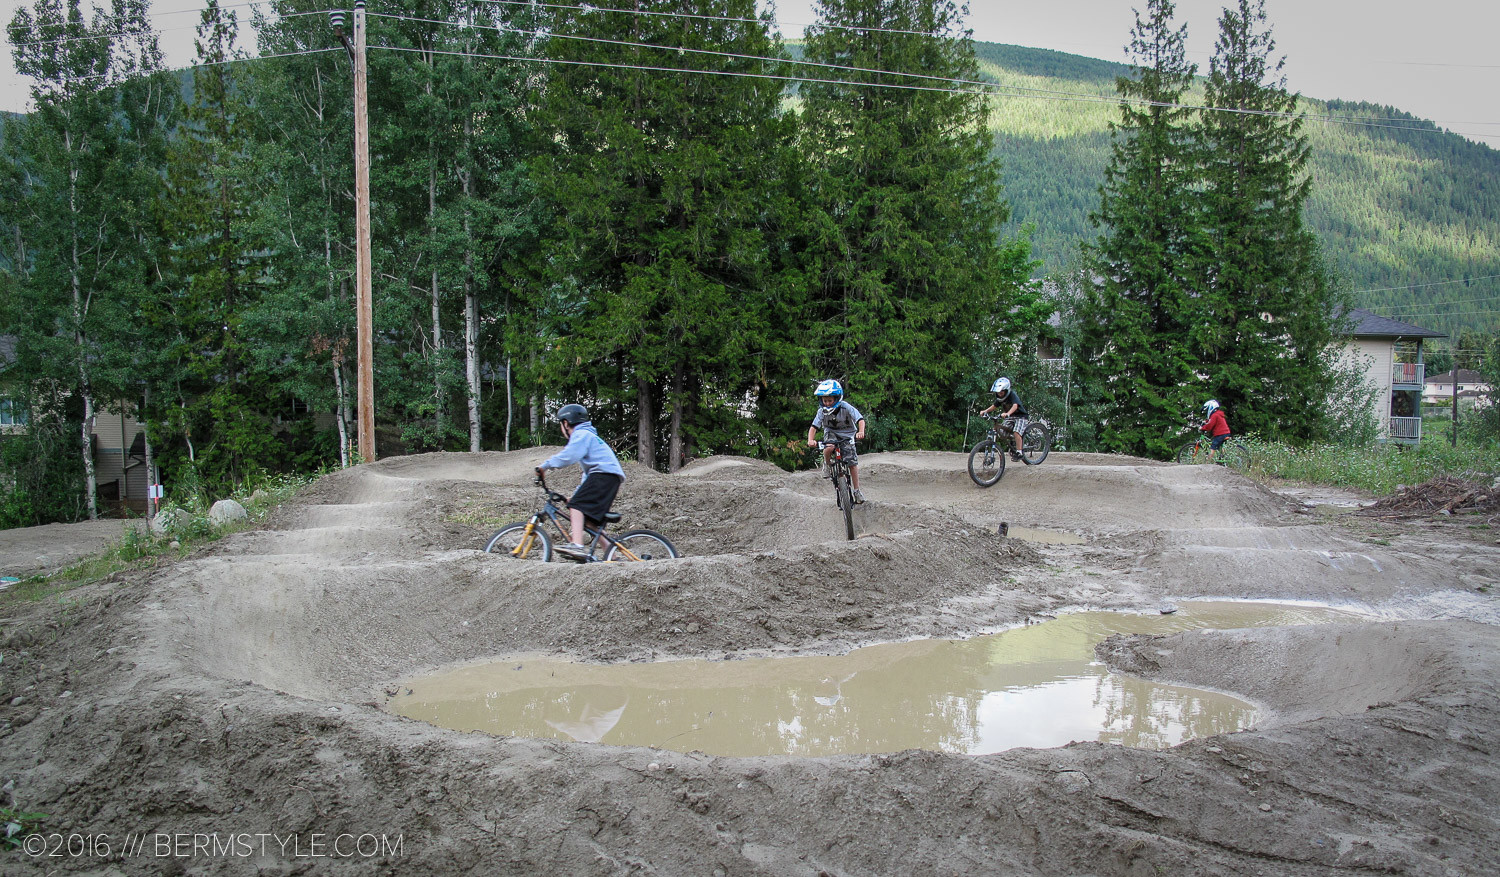 Drainage can be a challenge in maintaining a pump track, as seen at this pump track found some where in Canada. 2009.